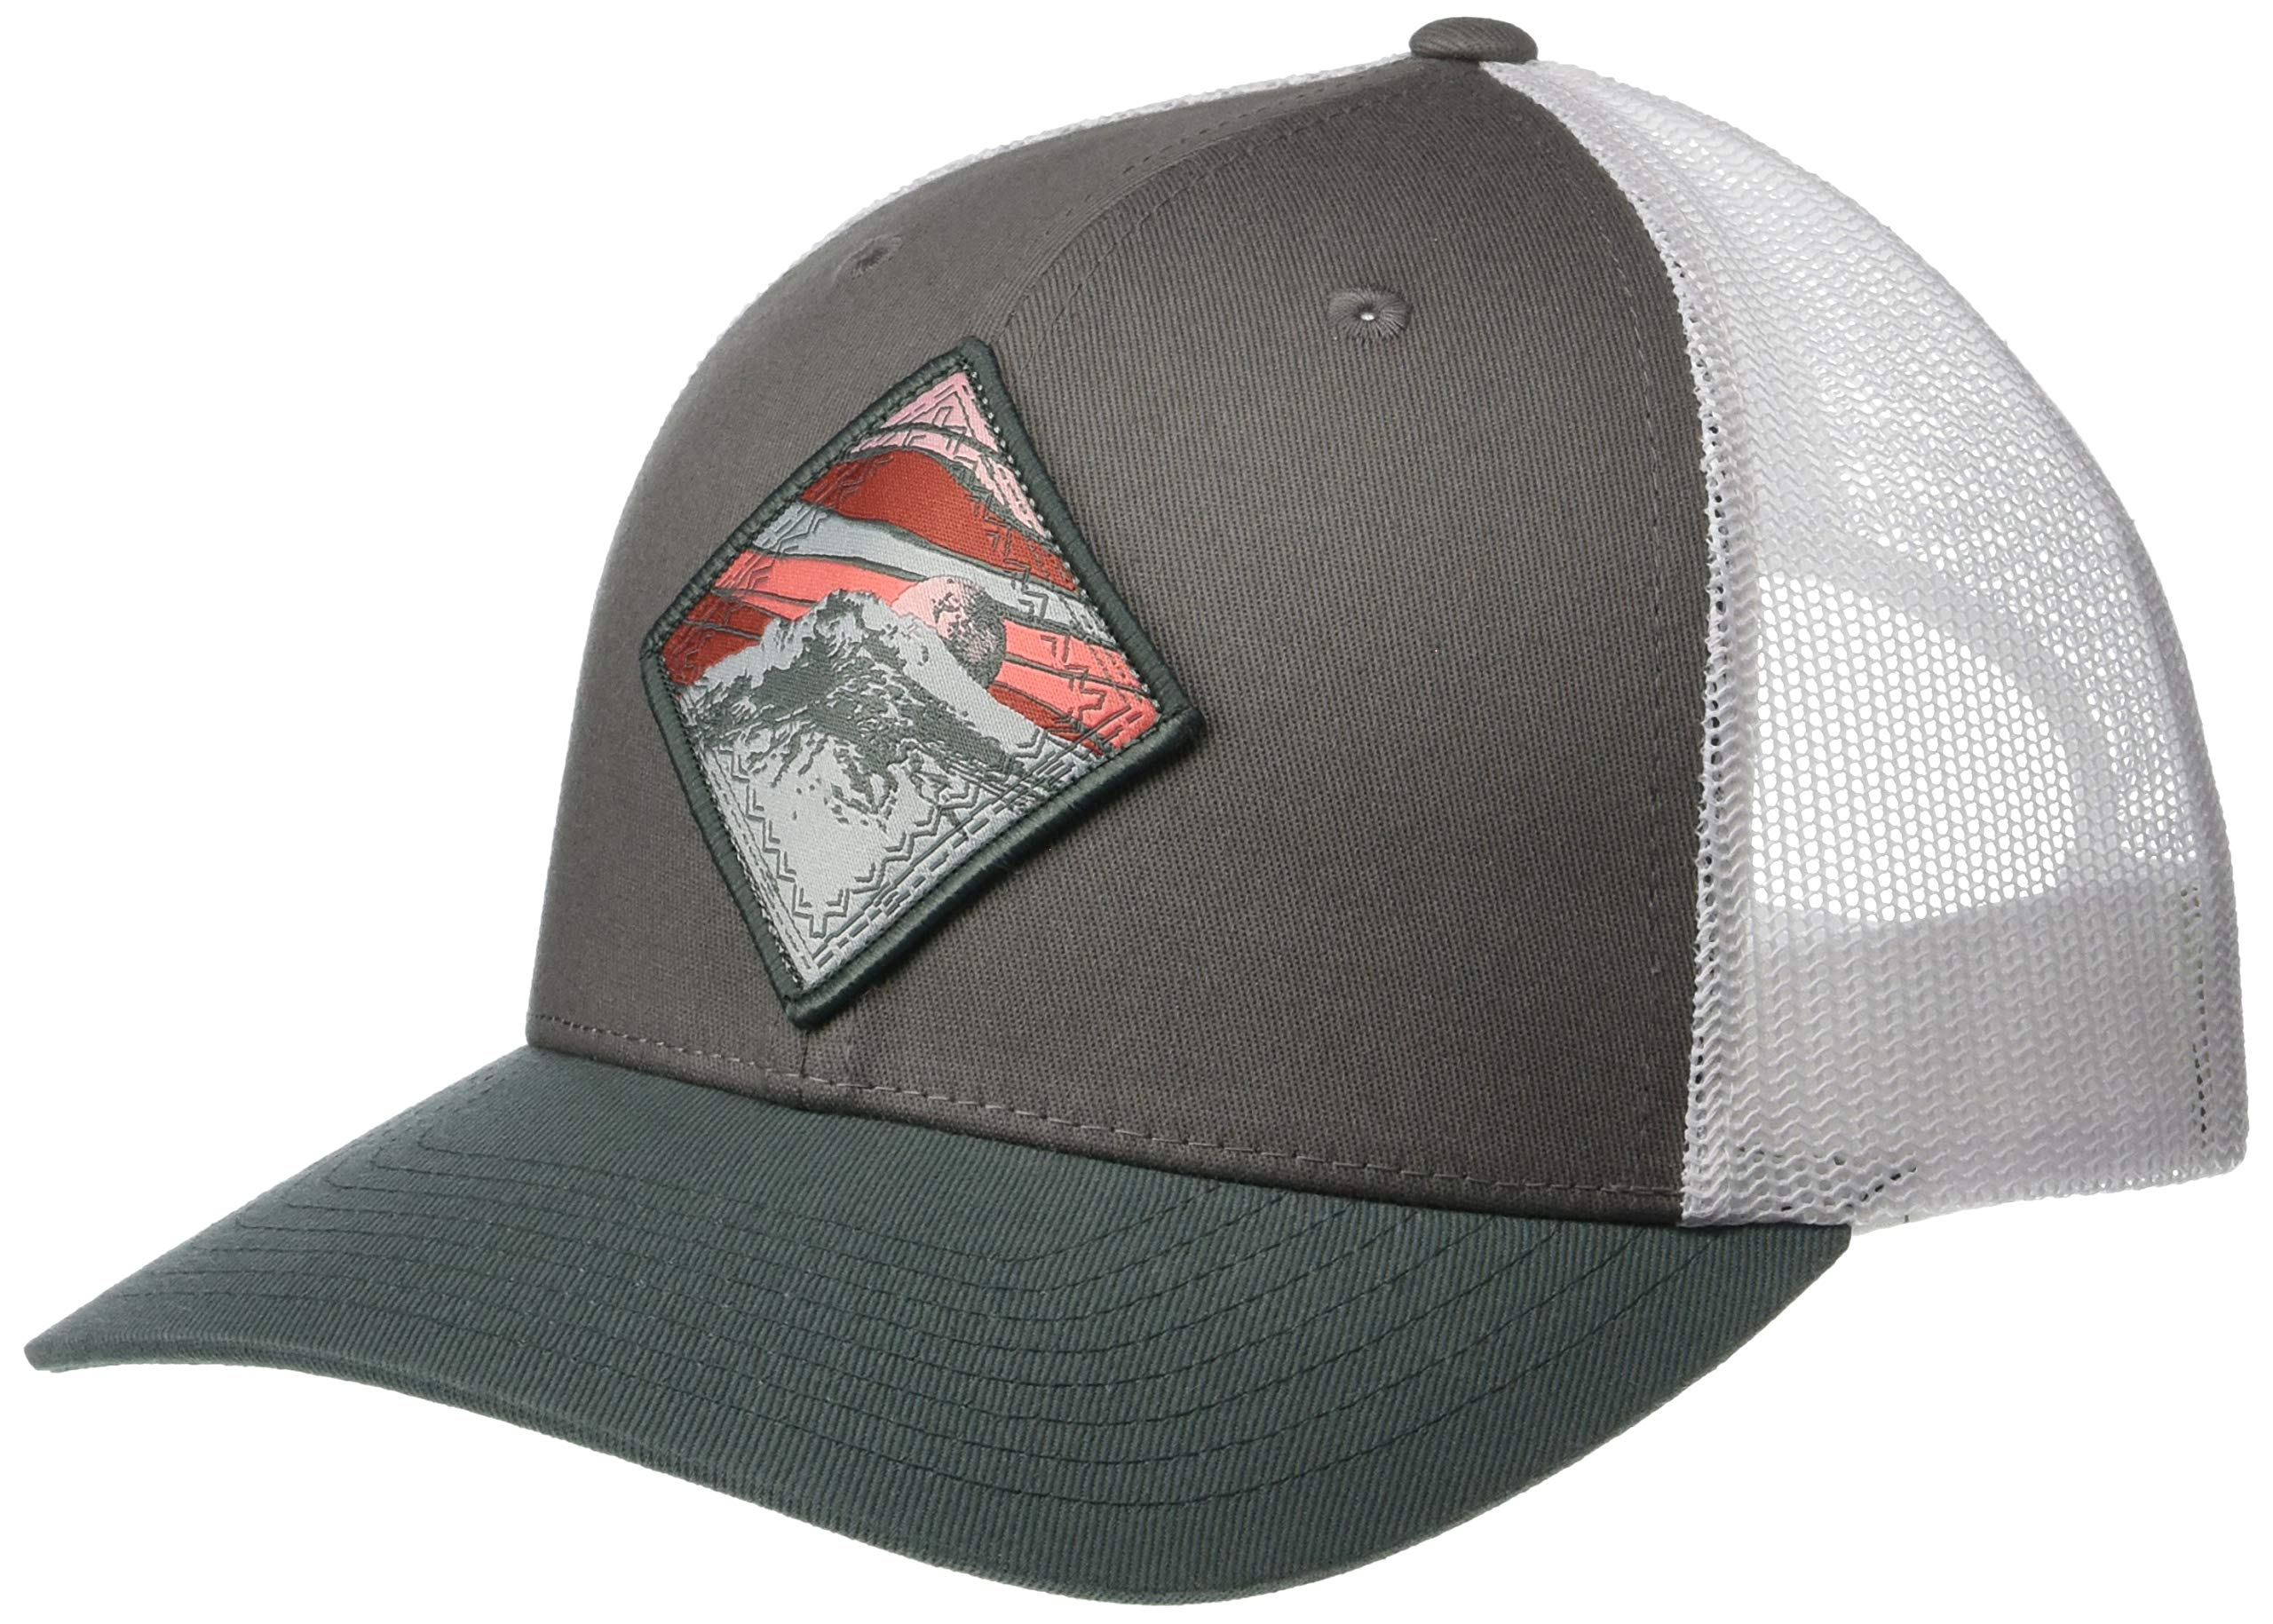 Columbia Women's Snap Back Hat, Titanium/Mountain Patch, One Size